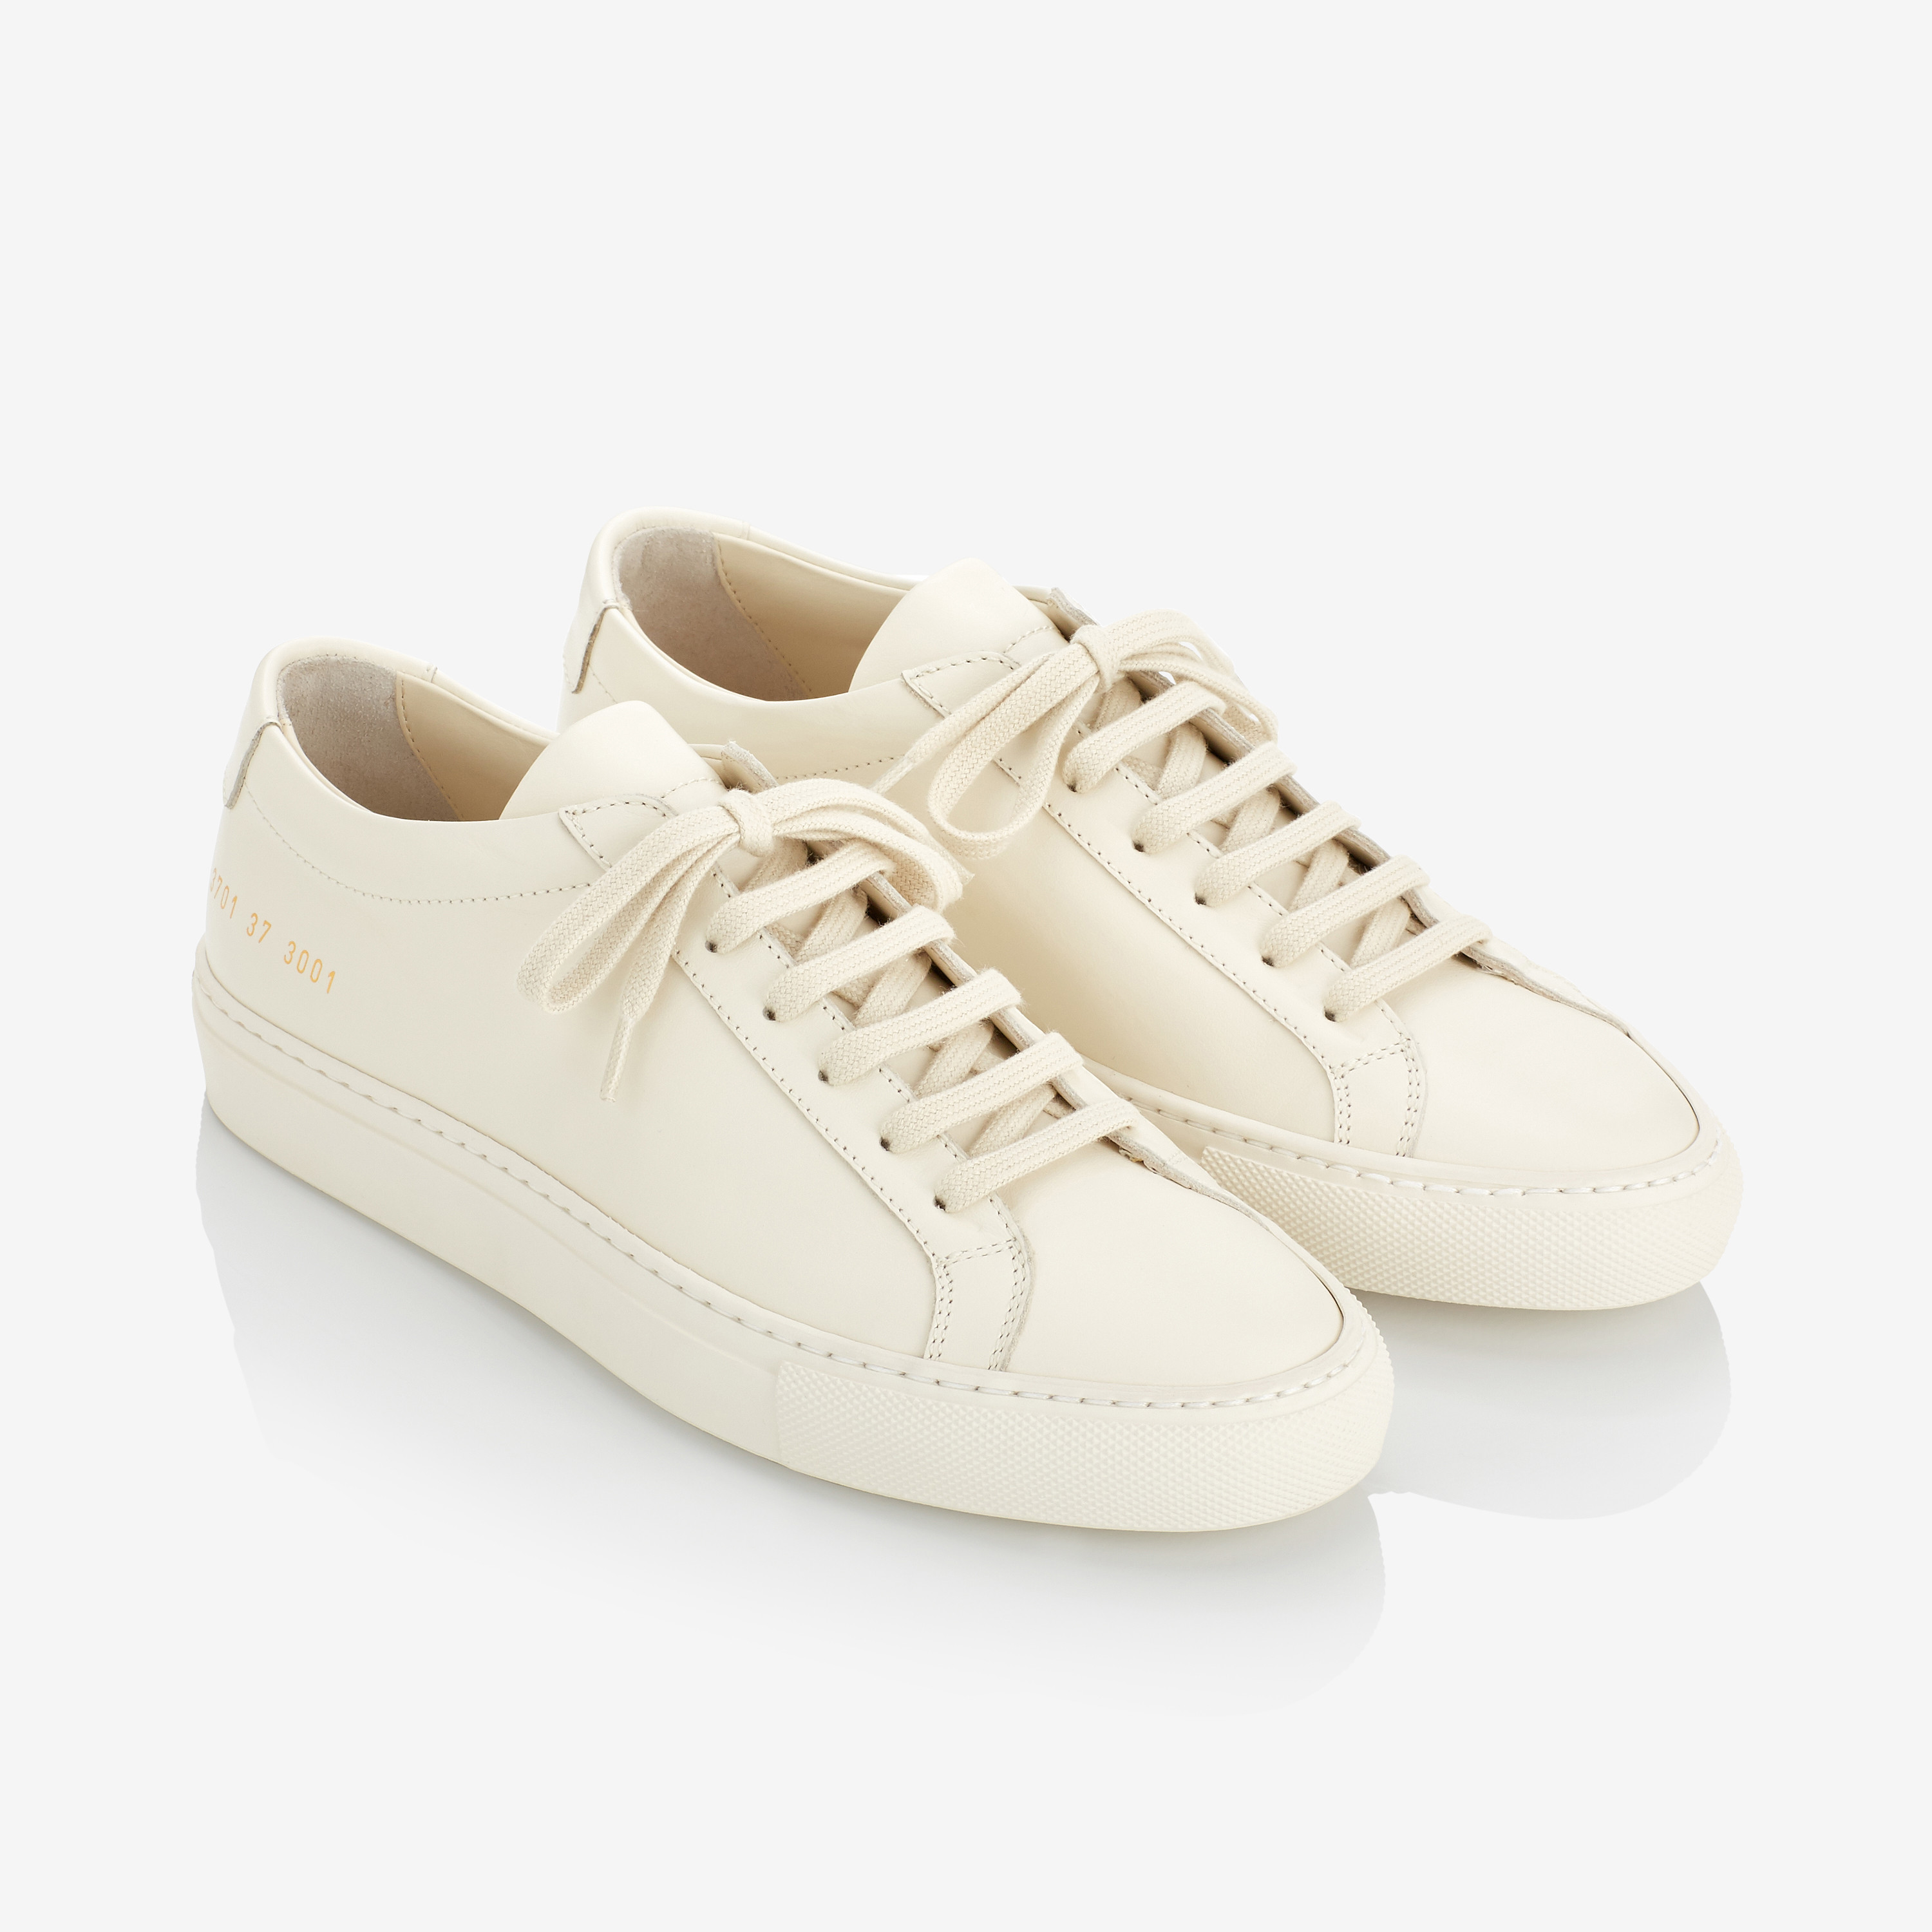 db36c609cf82 Common Projects Achilles Low Warm White